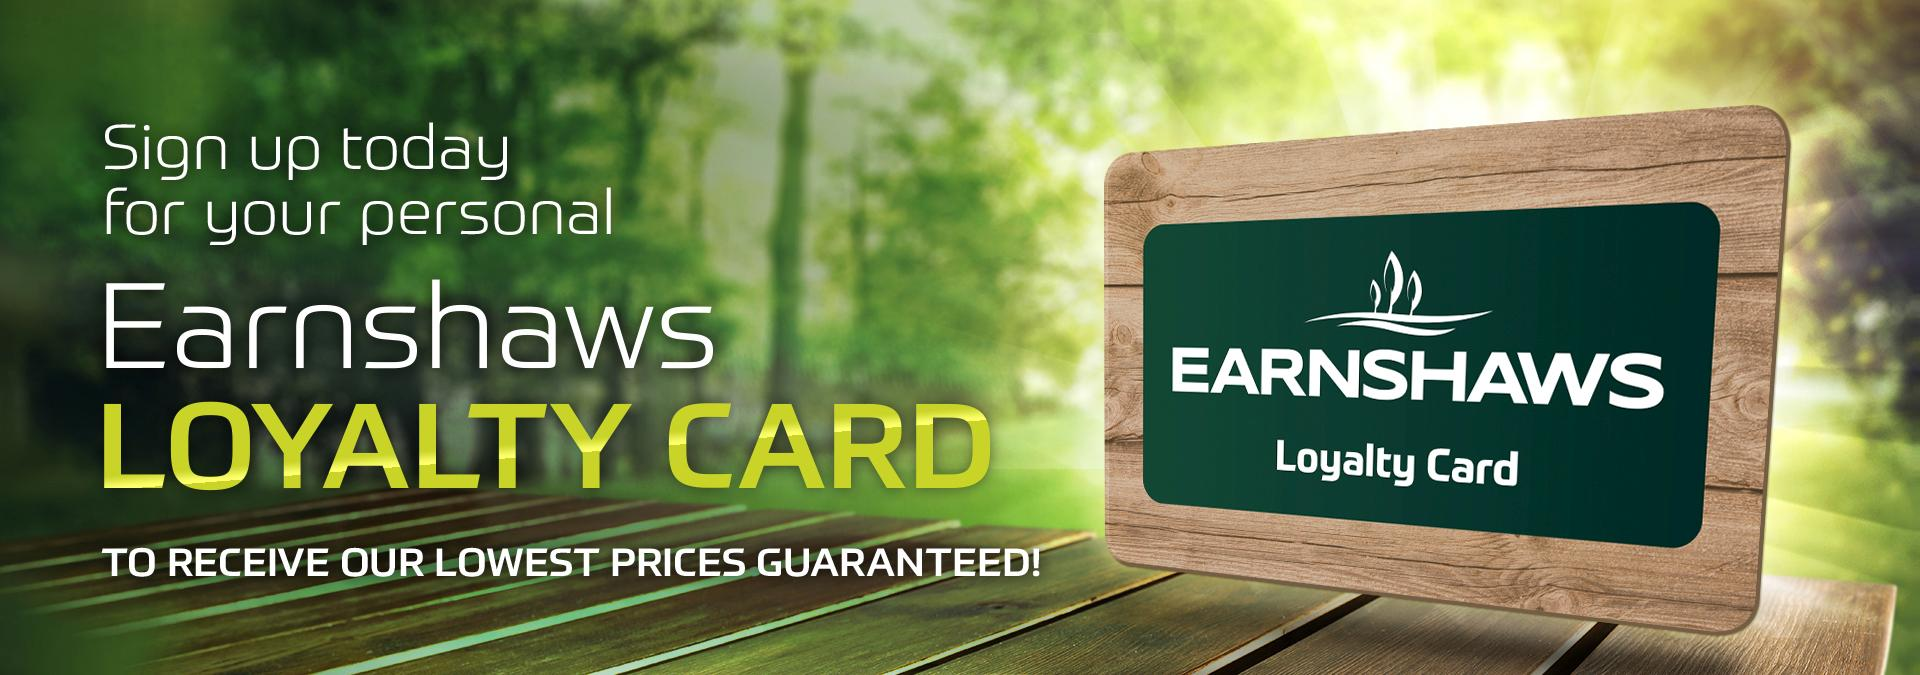 EARNSHAWS LOYALTY CARD